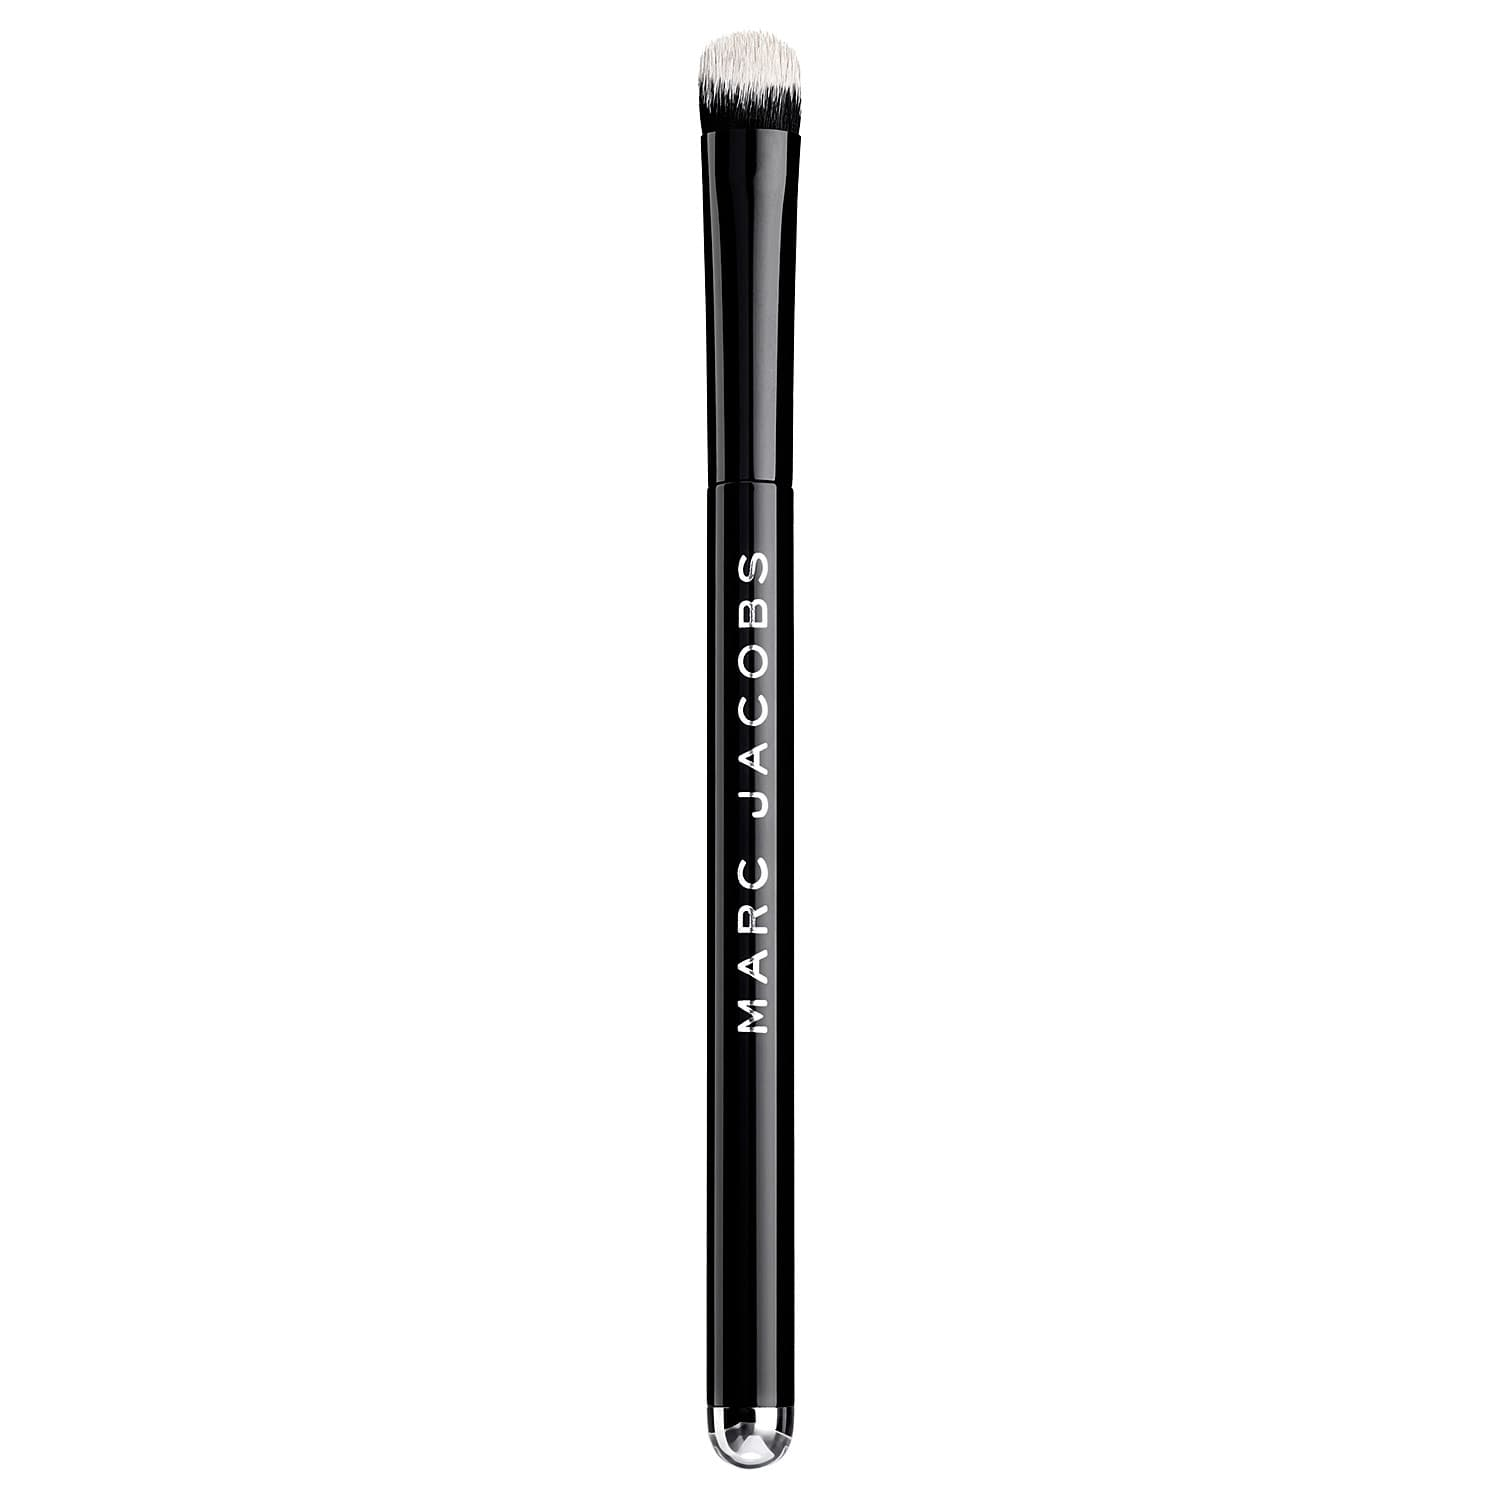 The Conceal - Full Cover Correcting Brush No. 14